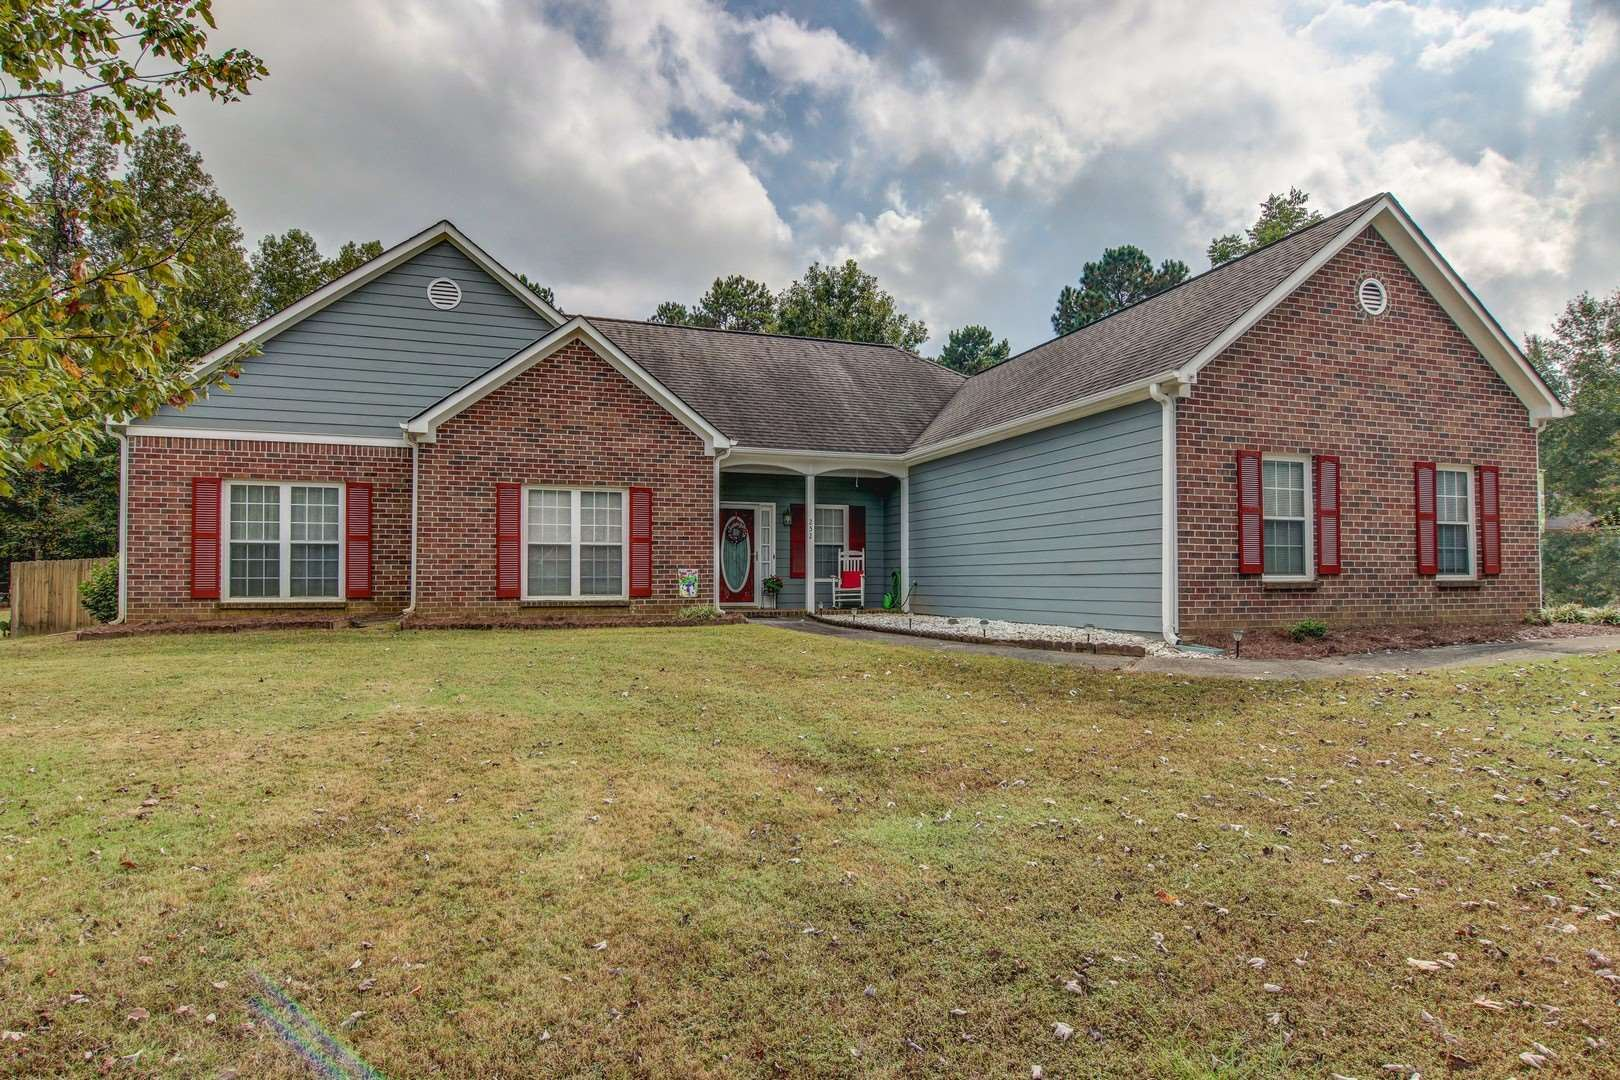 252 Garden Walk Way, Loganville, GA 30052 - MLS#: 8875032